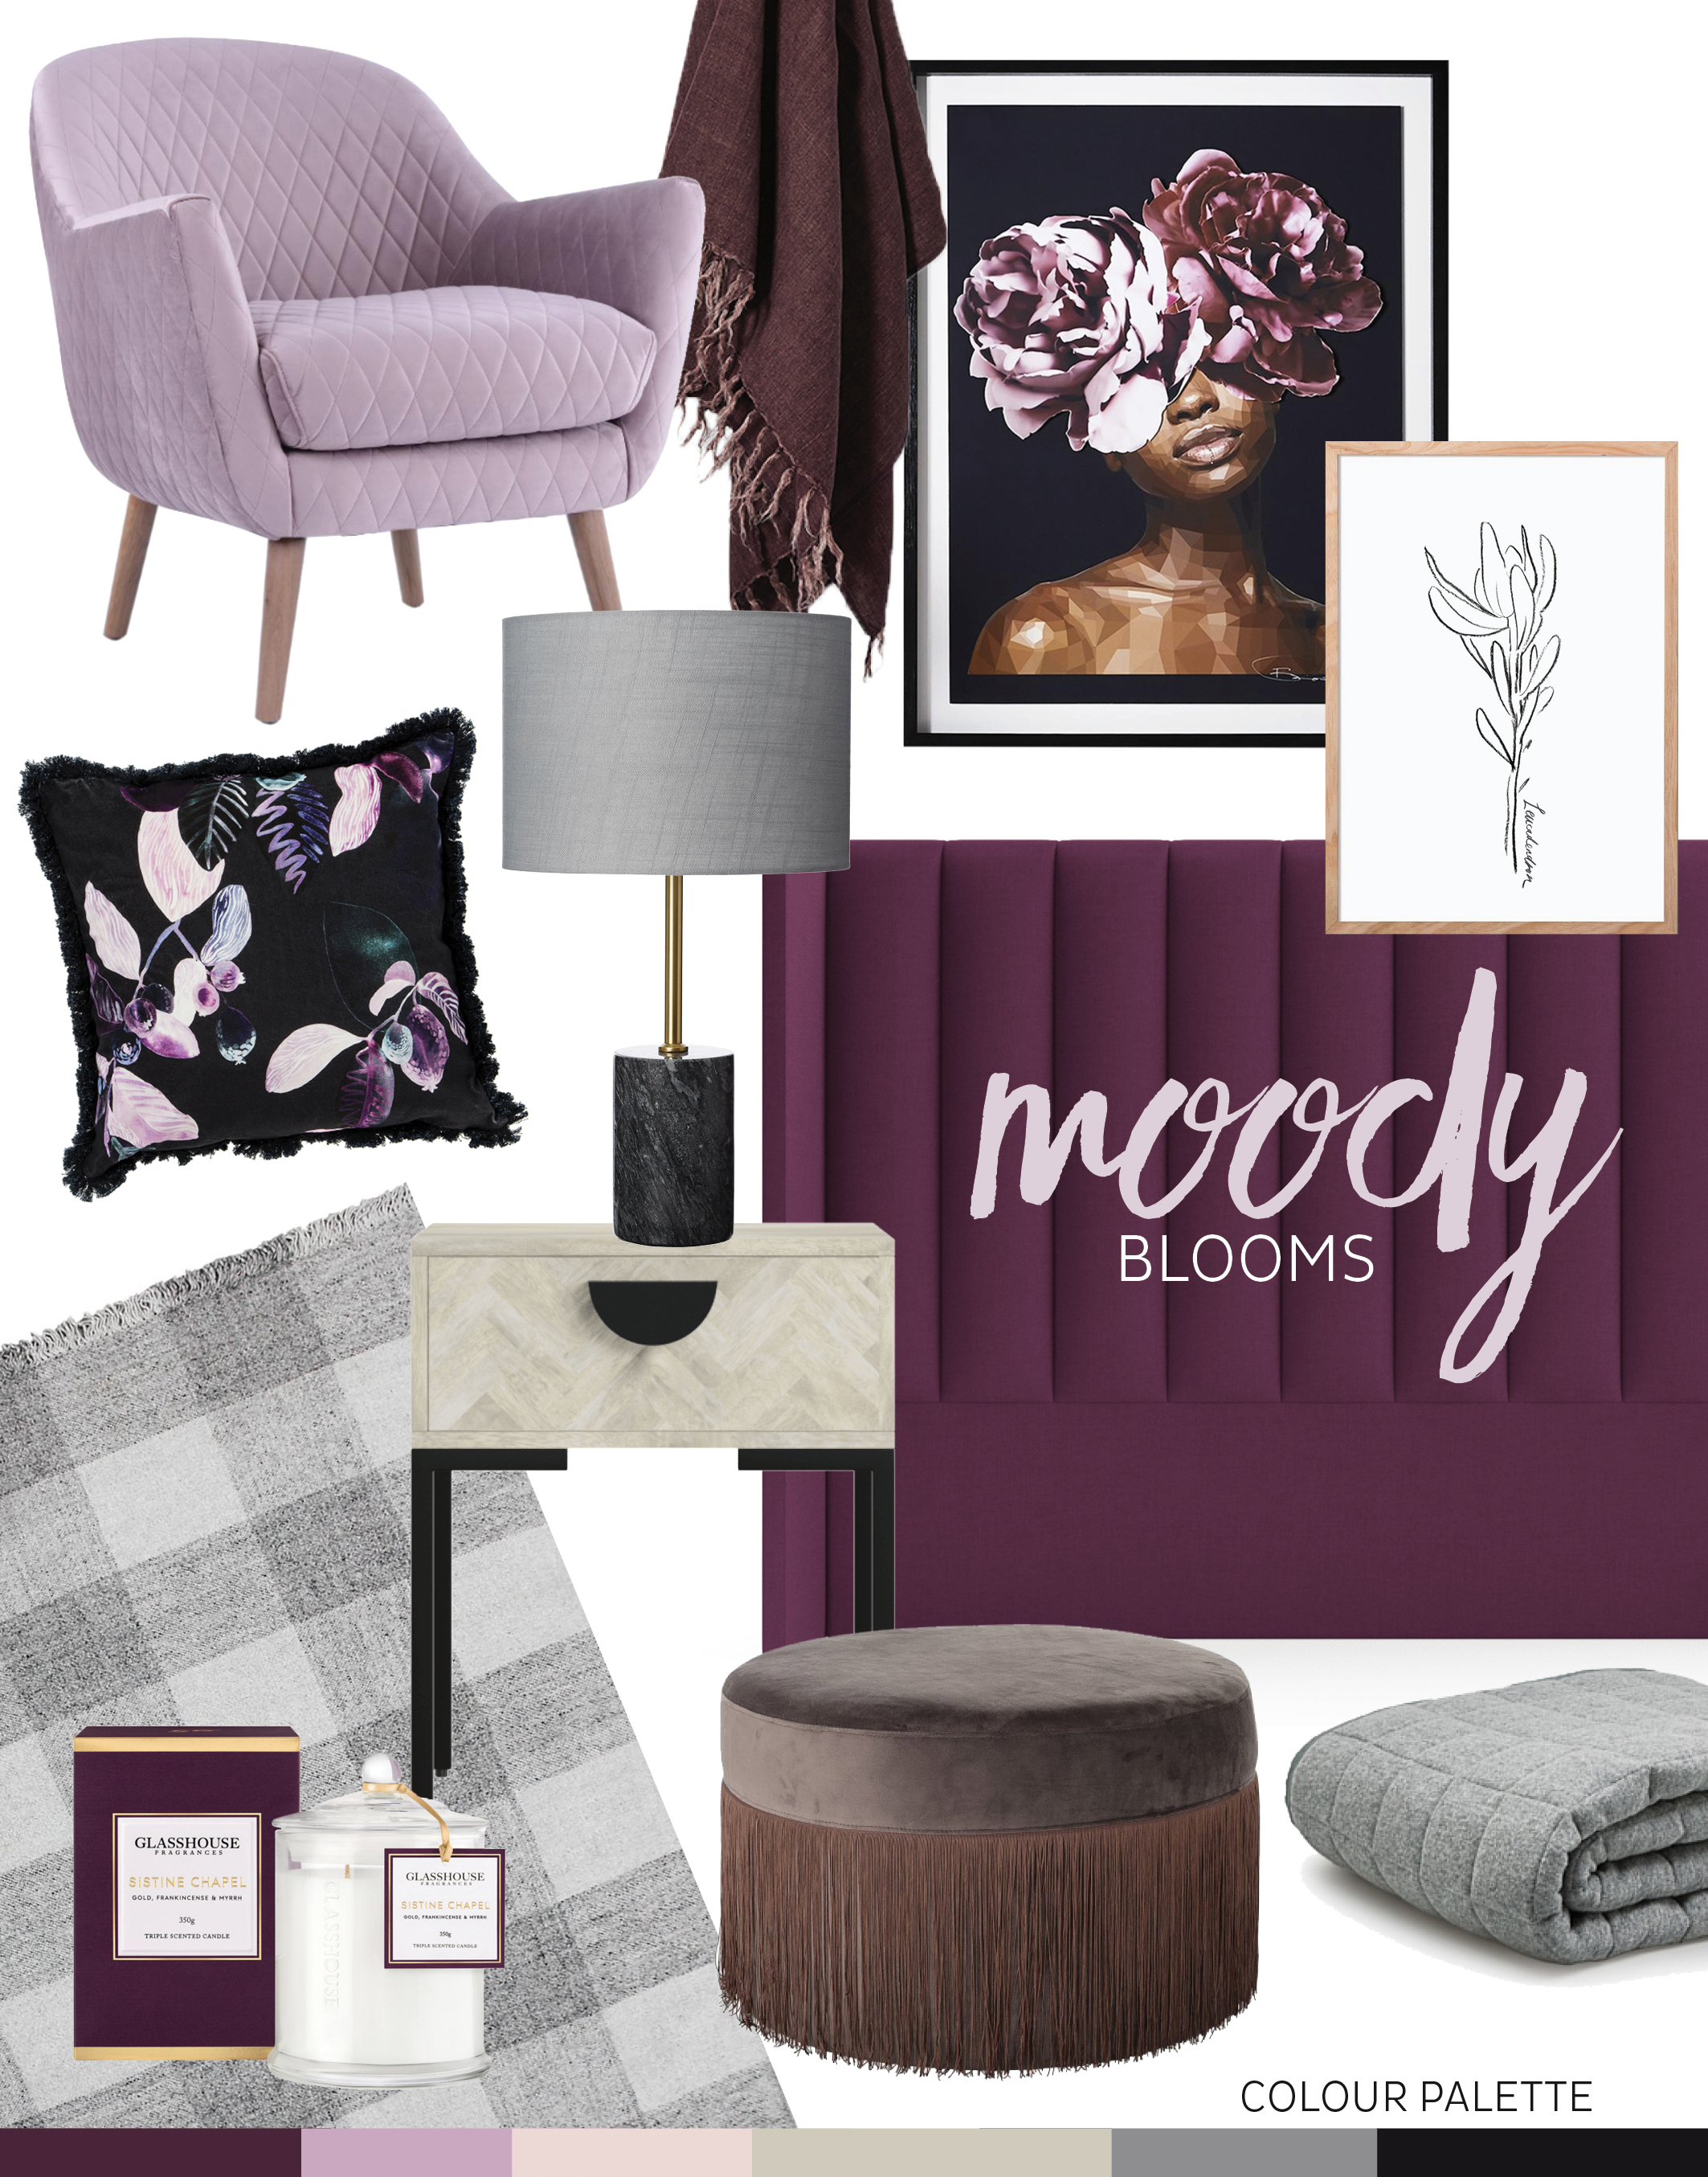 adore_home_blog_moody_blooms_floral_purple_deep_burgundy_lilac_grey_moody_winter_autumn_colour_scheme_palette.jpg